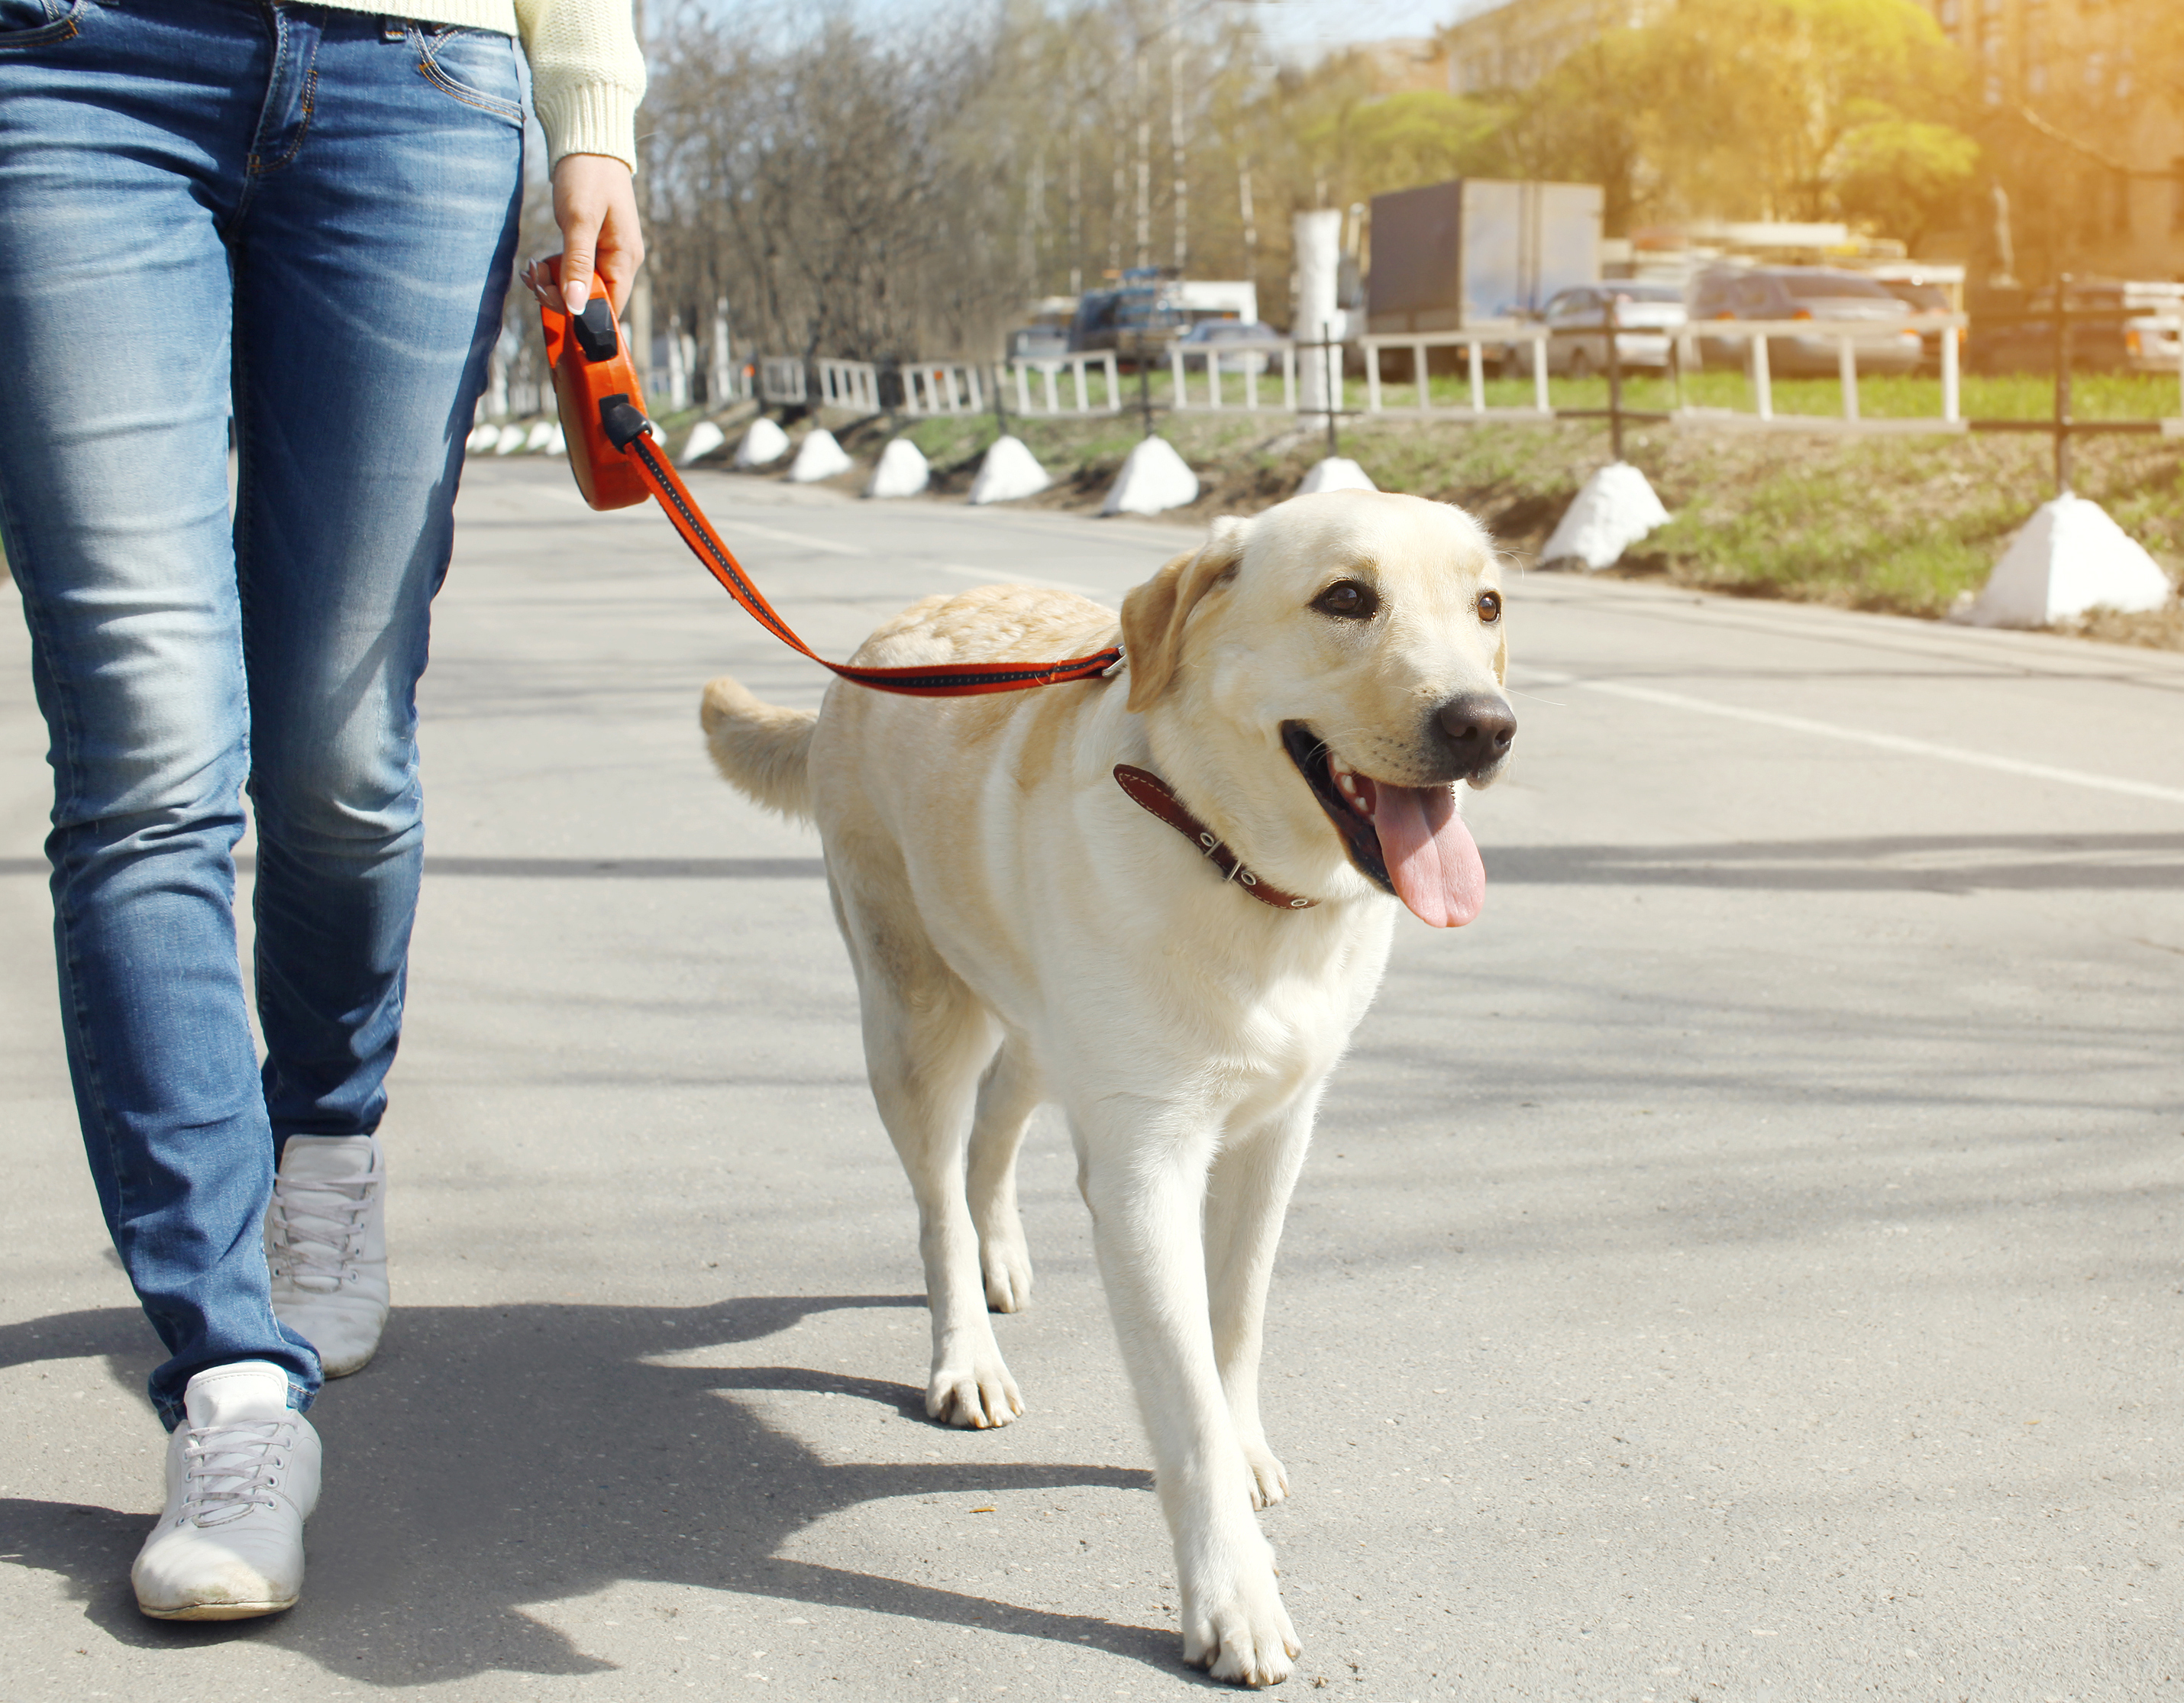 Walking your leashed dog in a local neighborhood or at a dog park